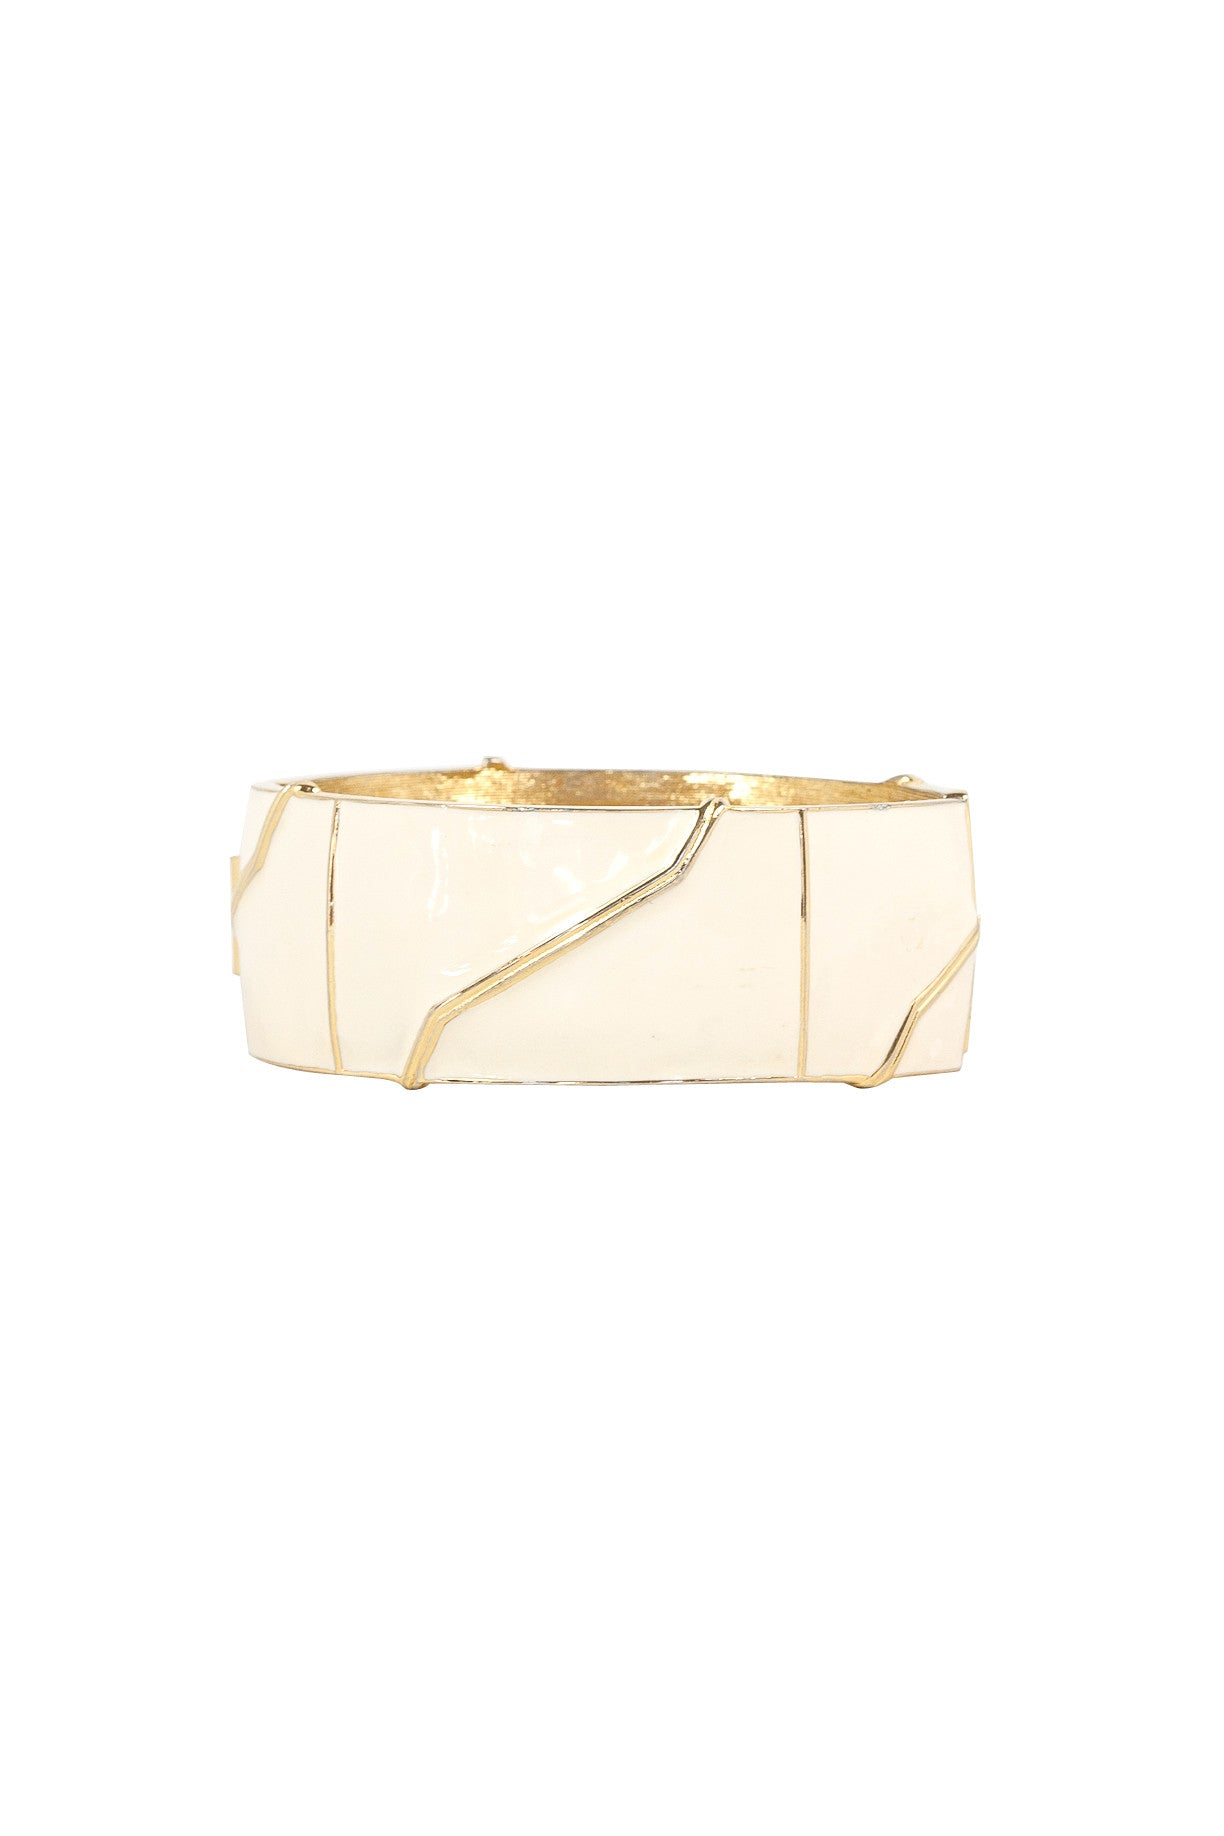 80's__Monet__Statement Cream Bangle Cuff